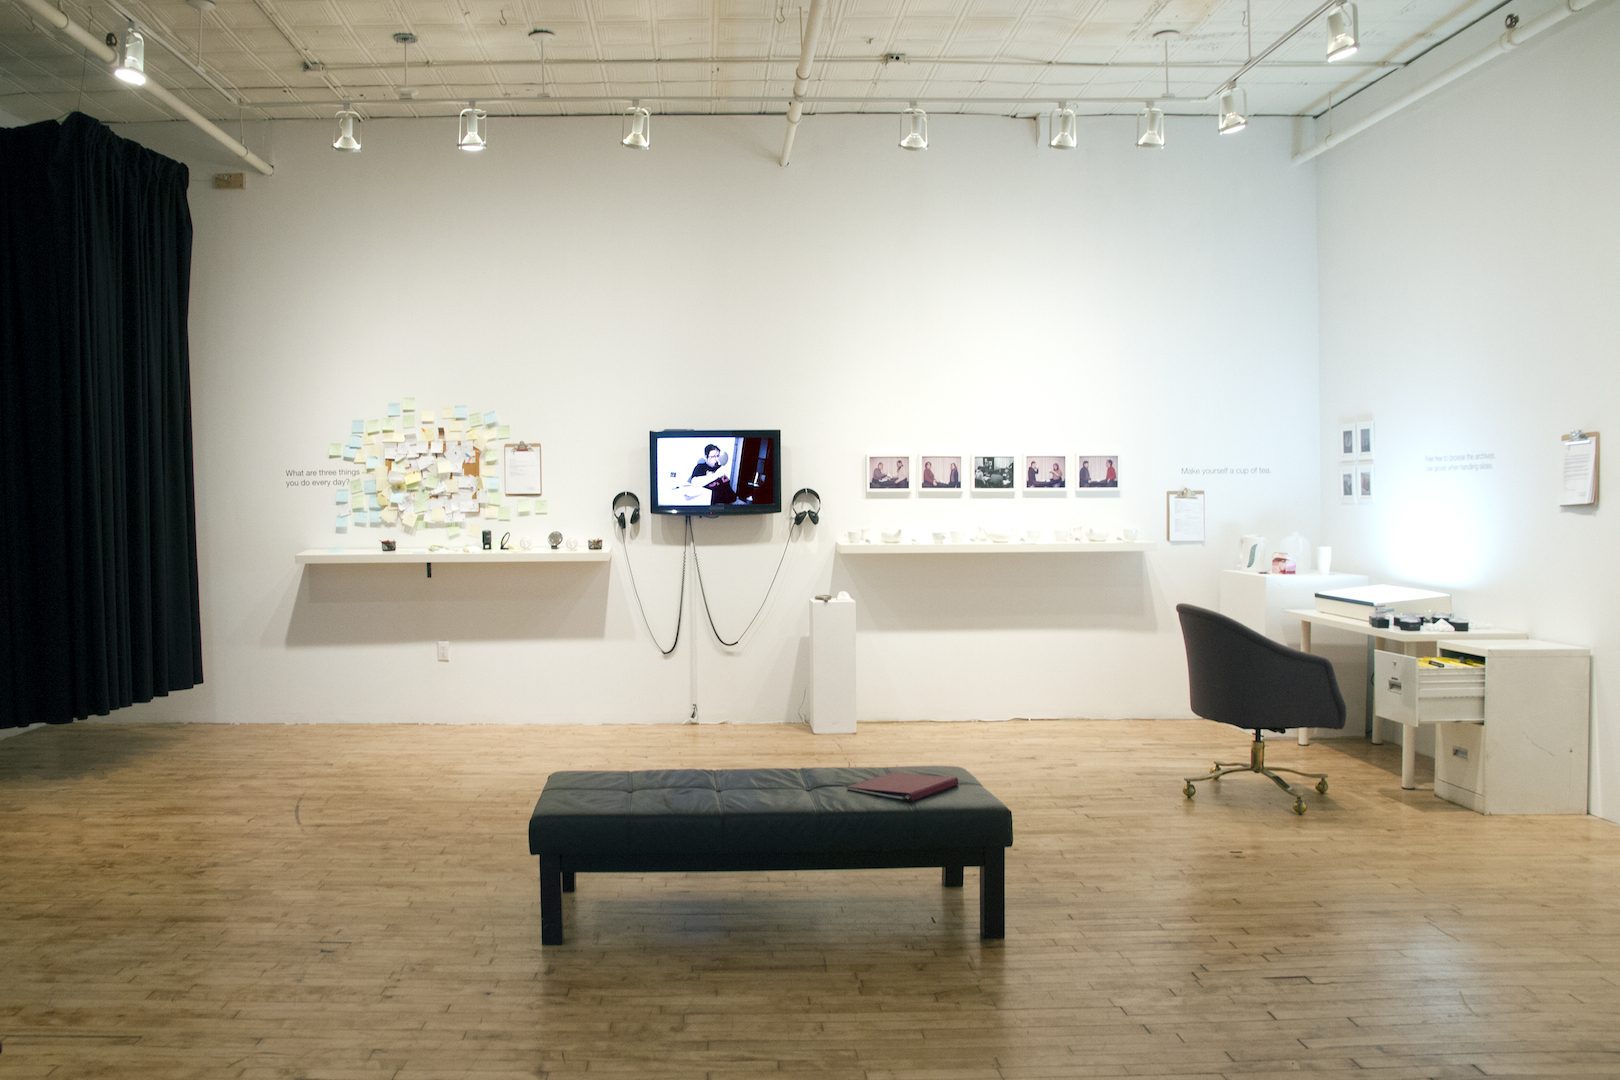 Installation View: Front Angle